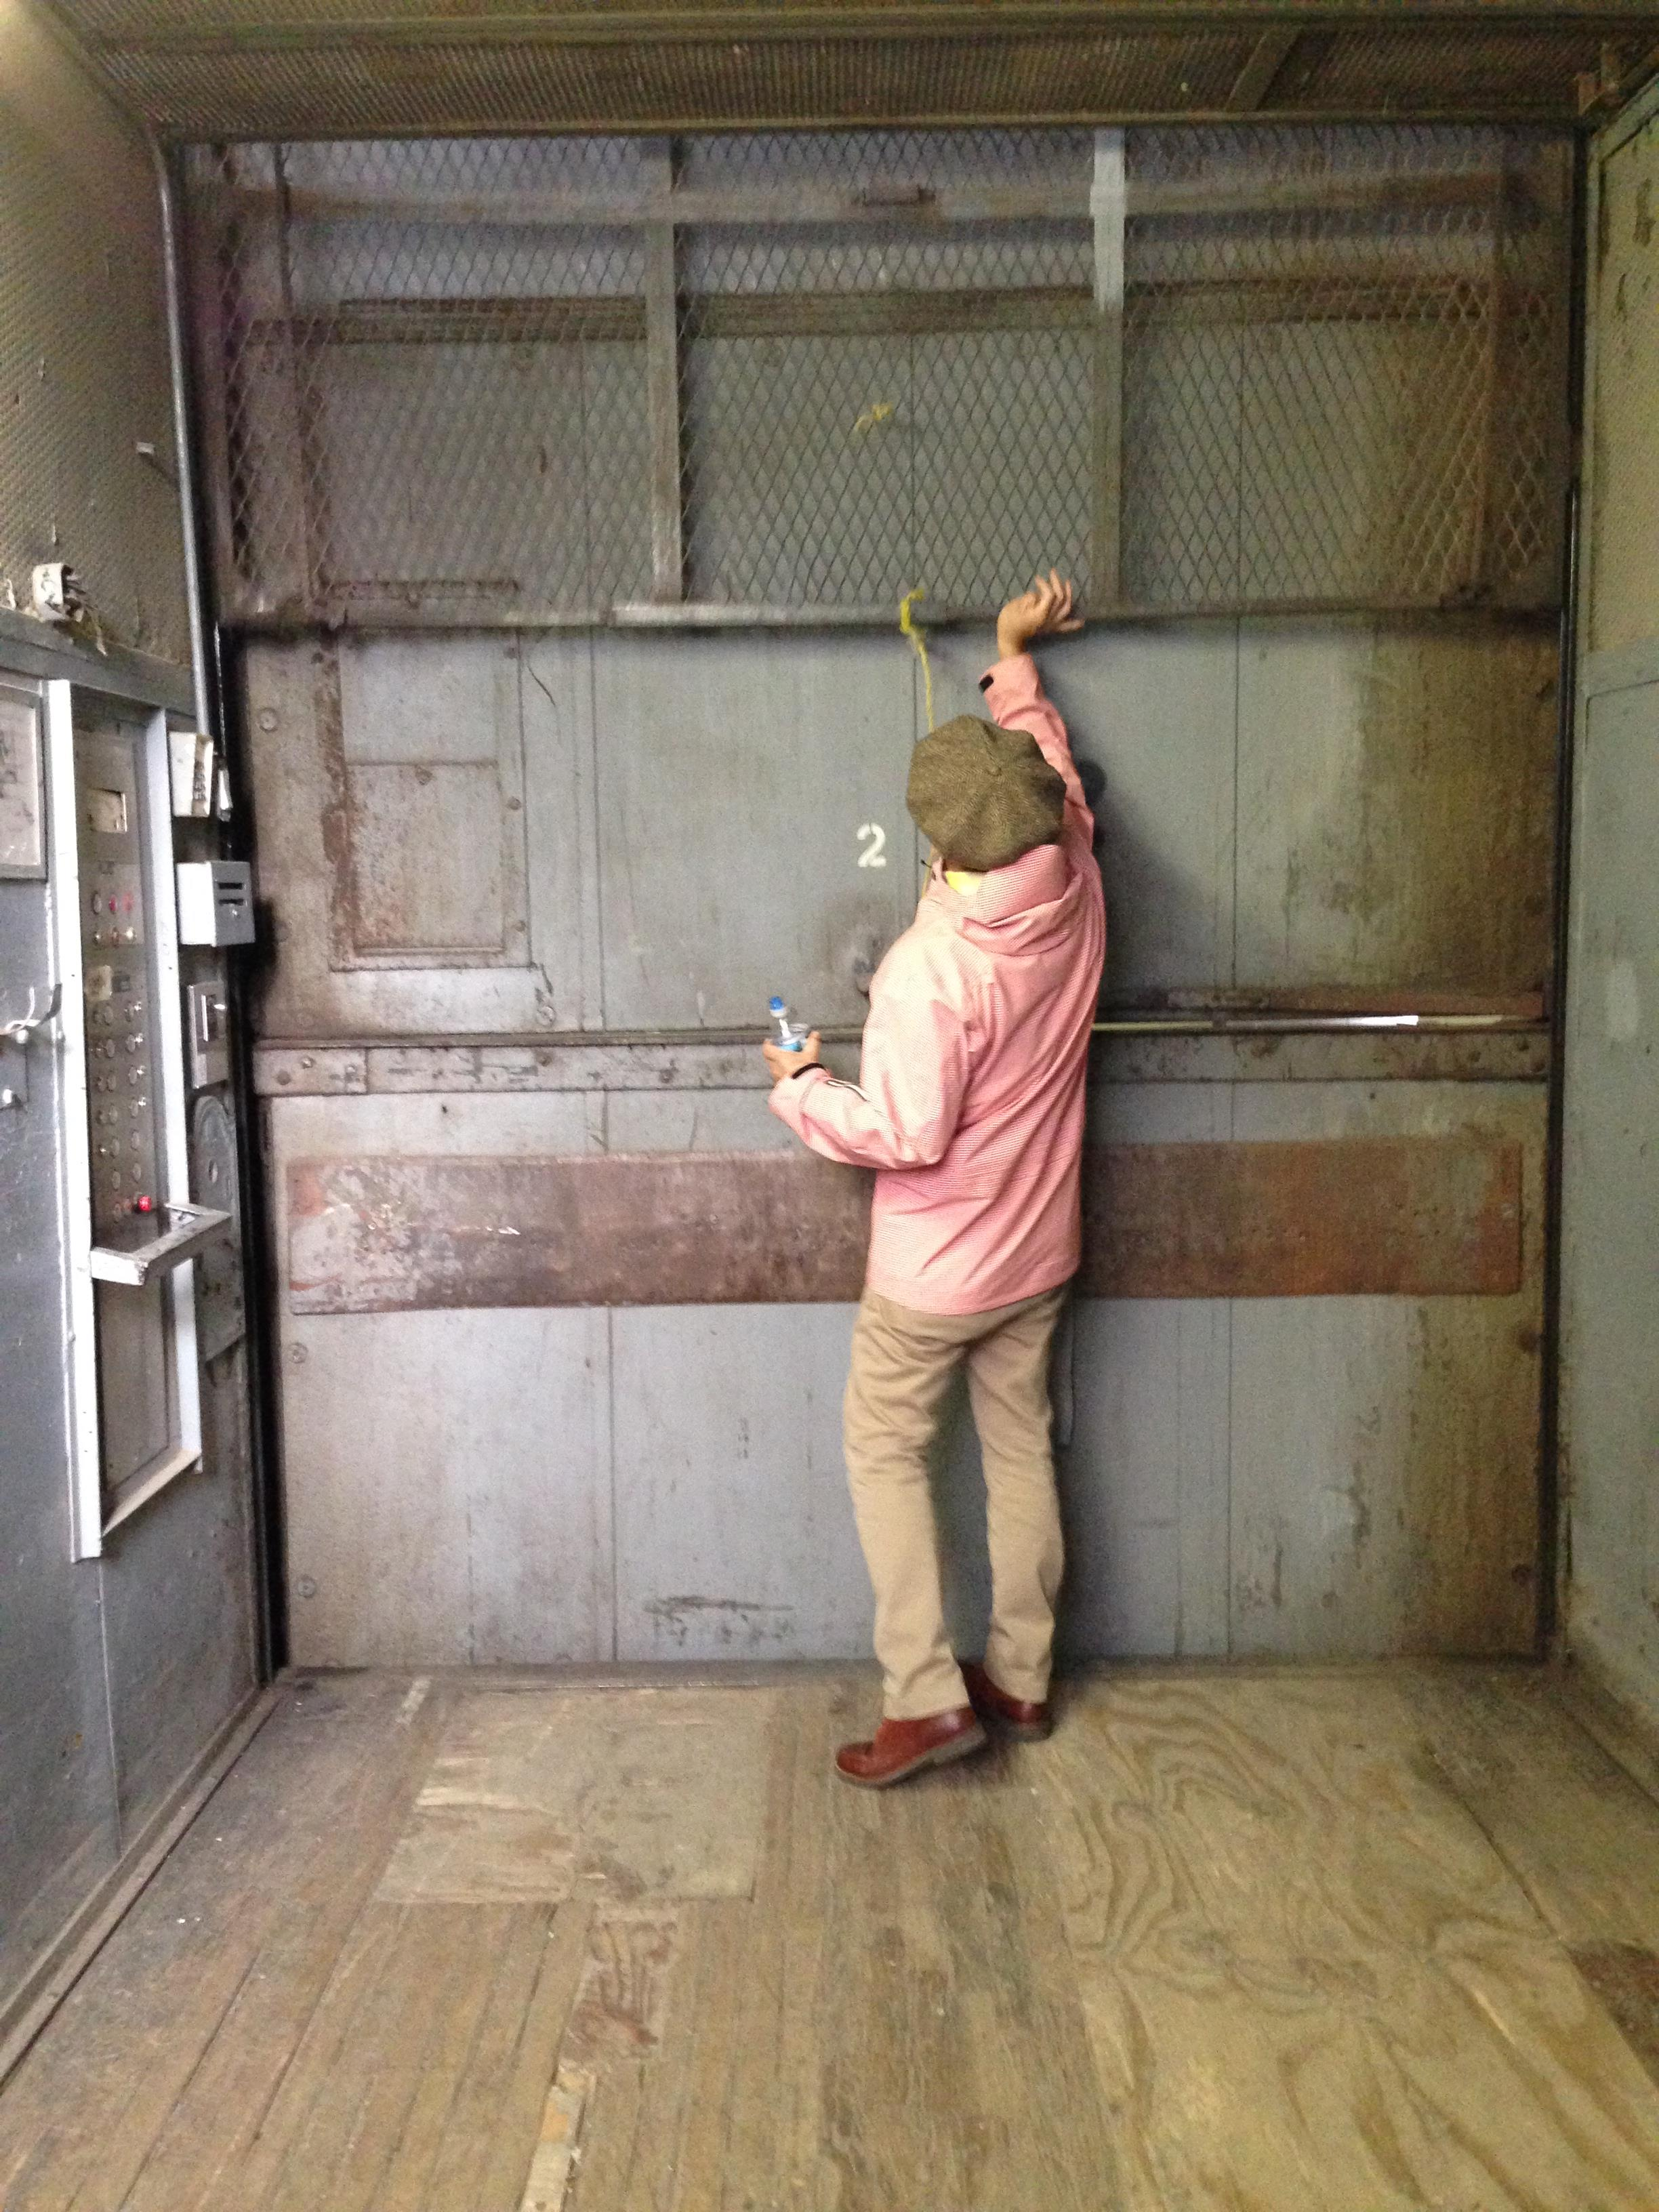 We took the freight elevator.